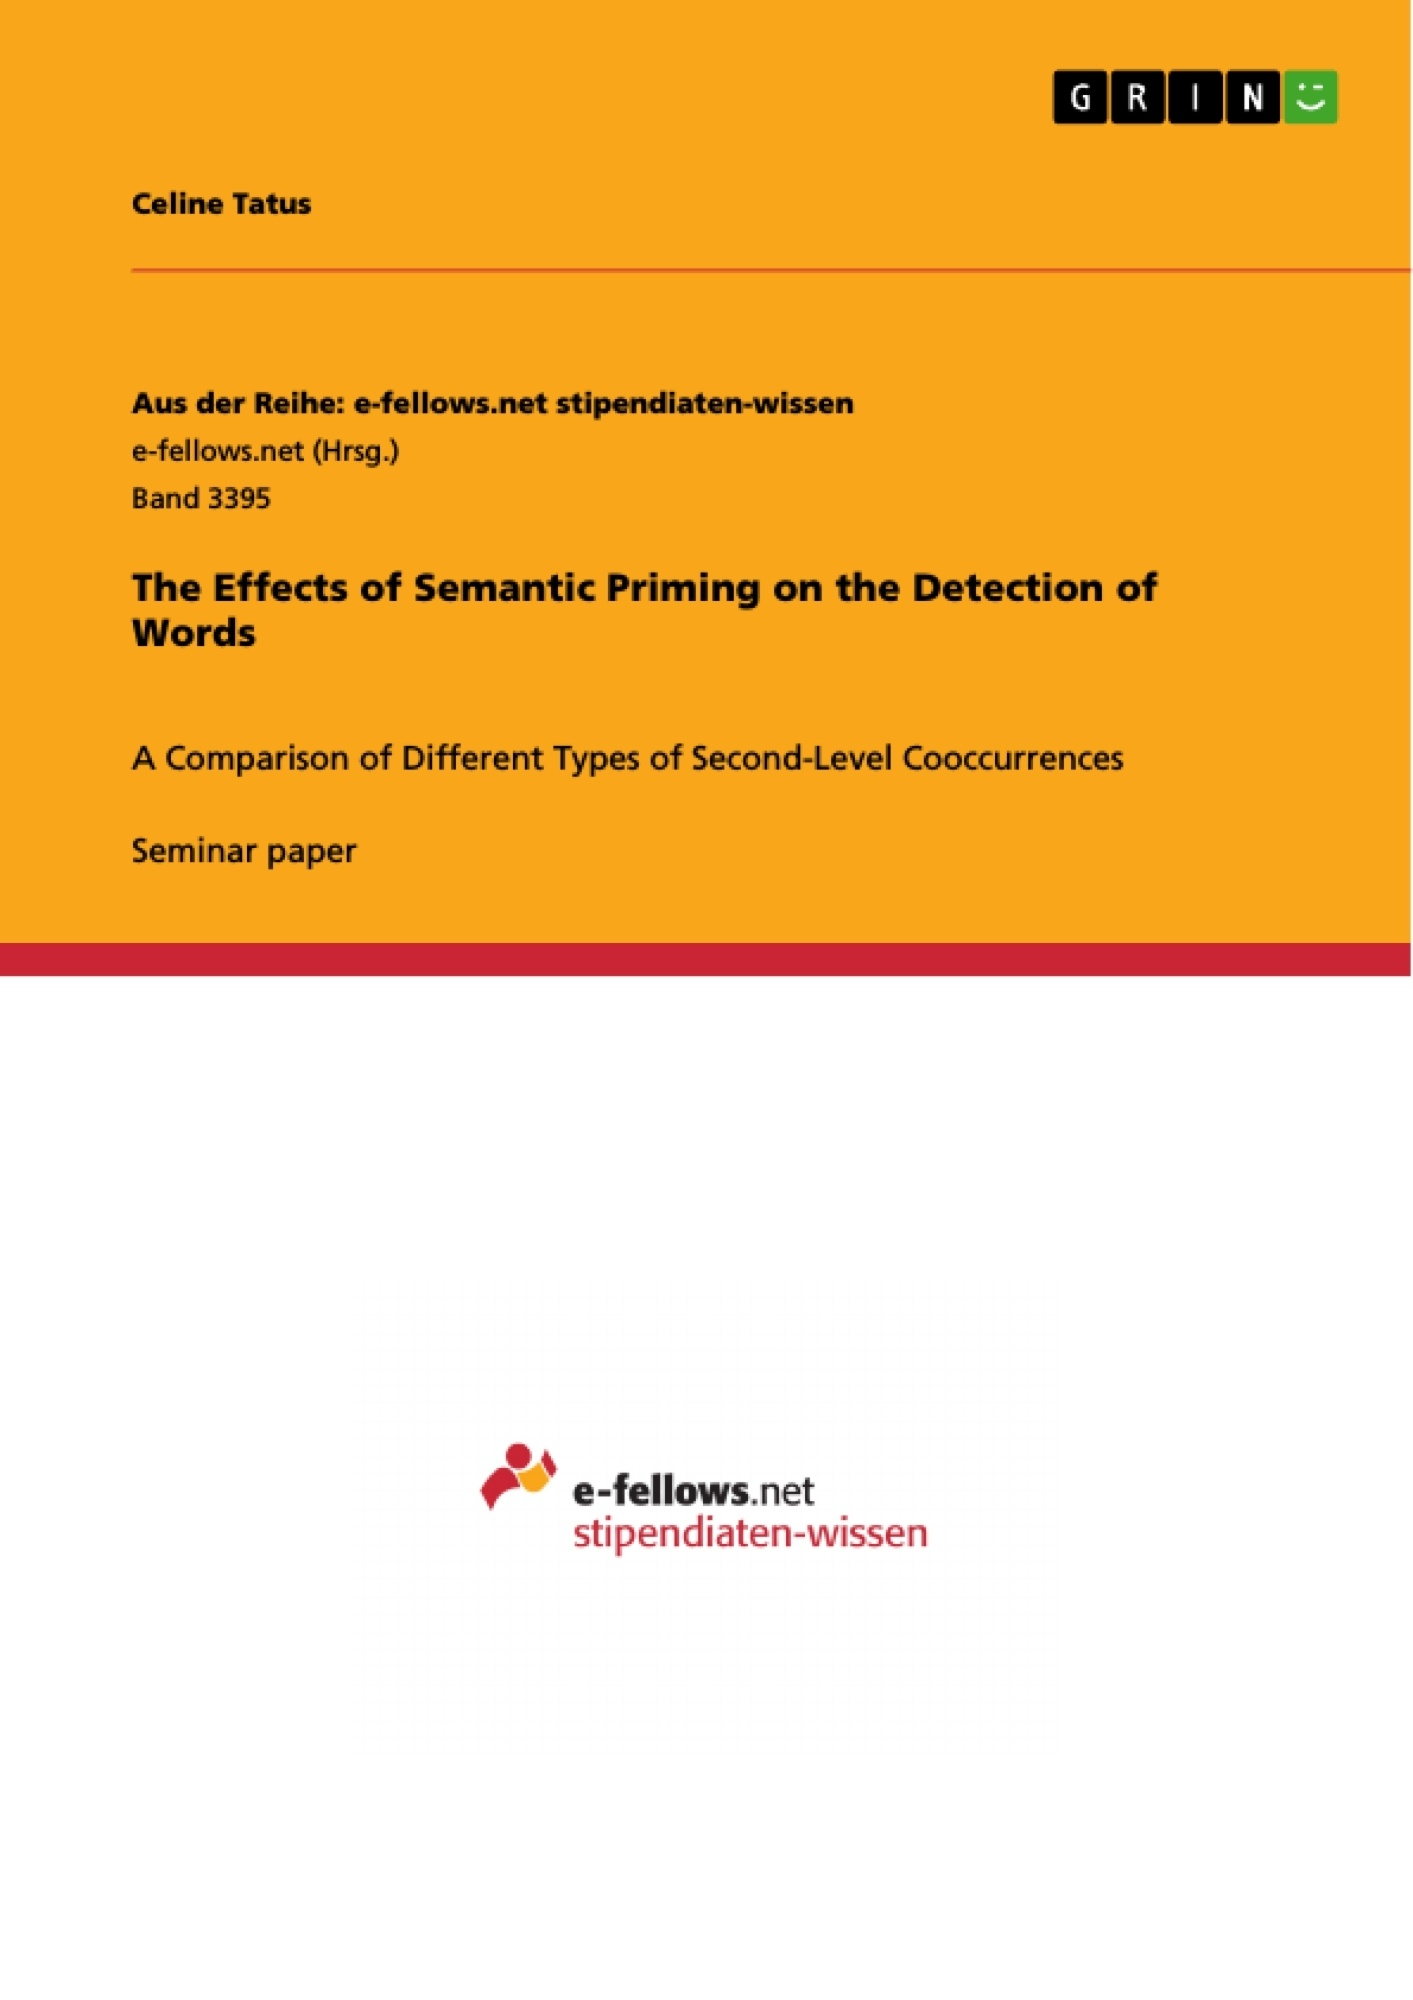 Title: The Effects of Semantic Priming on the Detection of Words